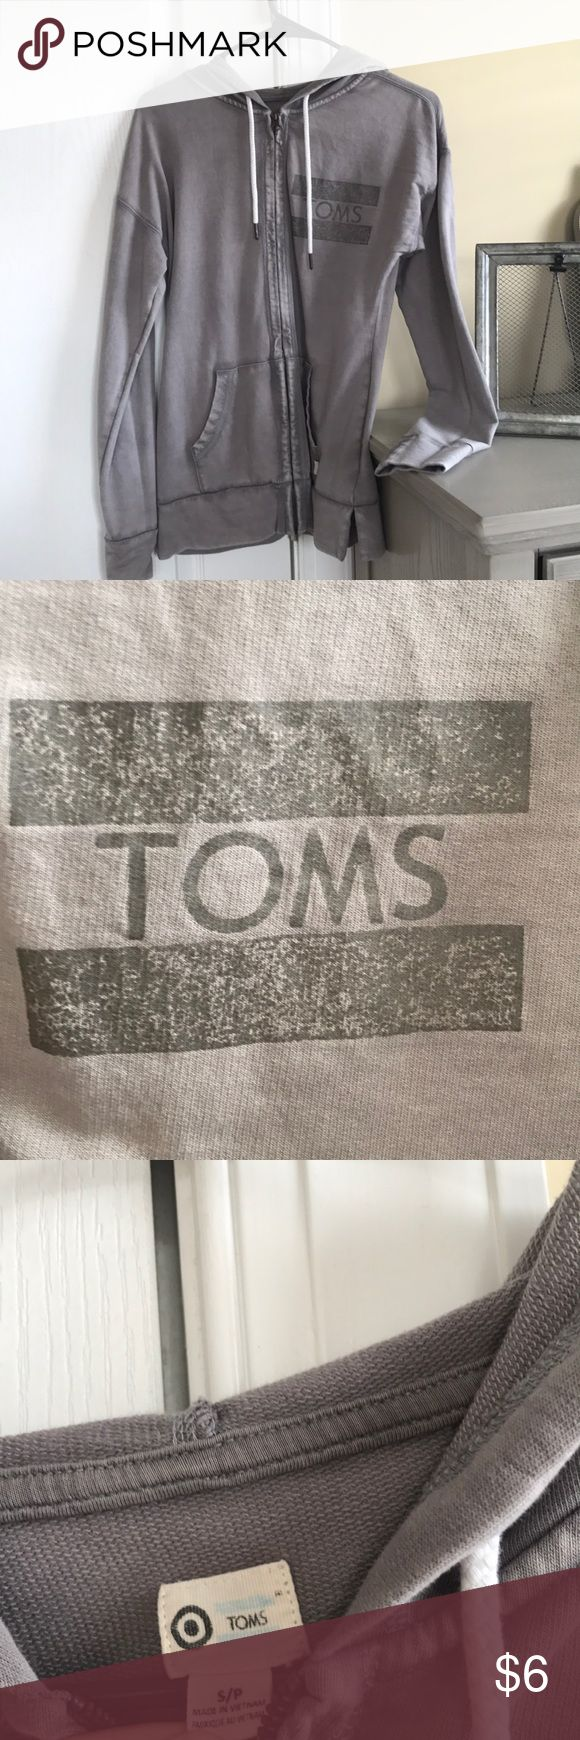 Toms, grey zip up sweater Toms, grey zip up sweater! Very comfortable Toms Sweaters